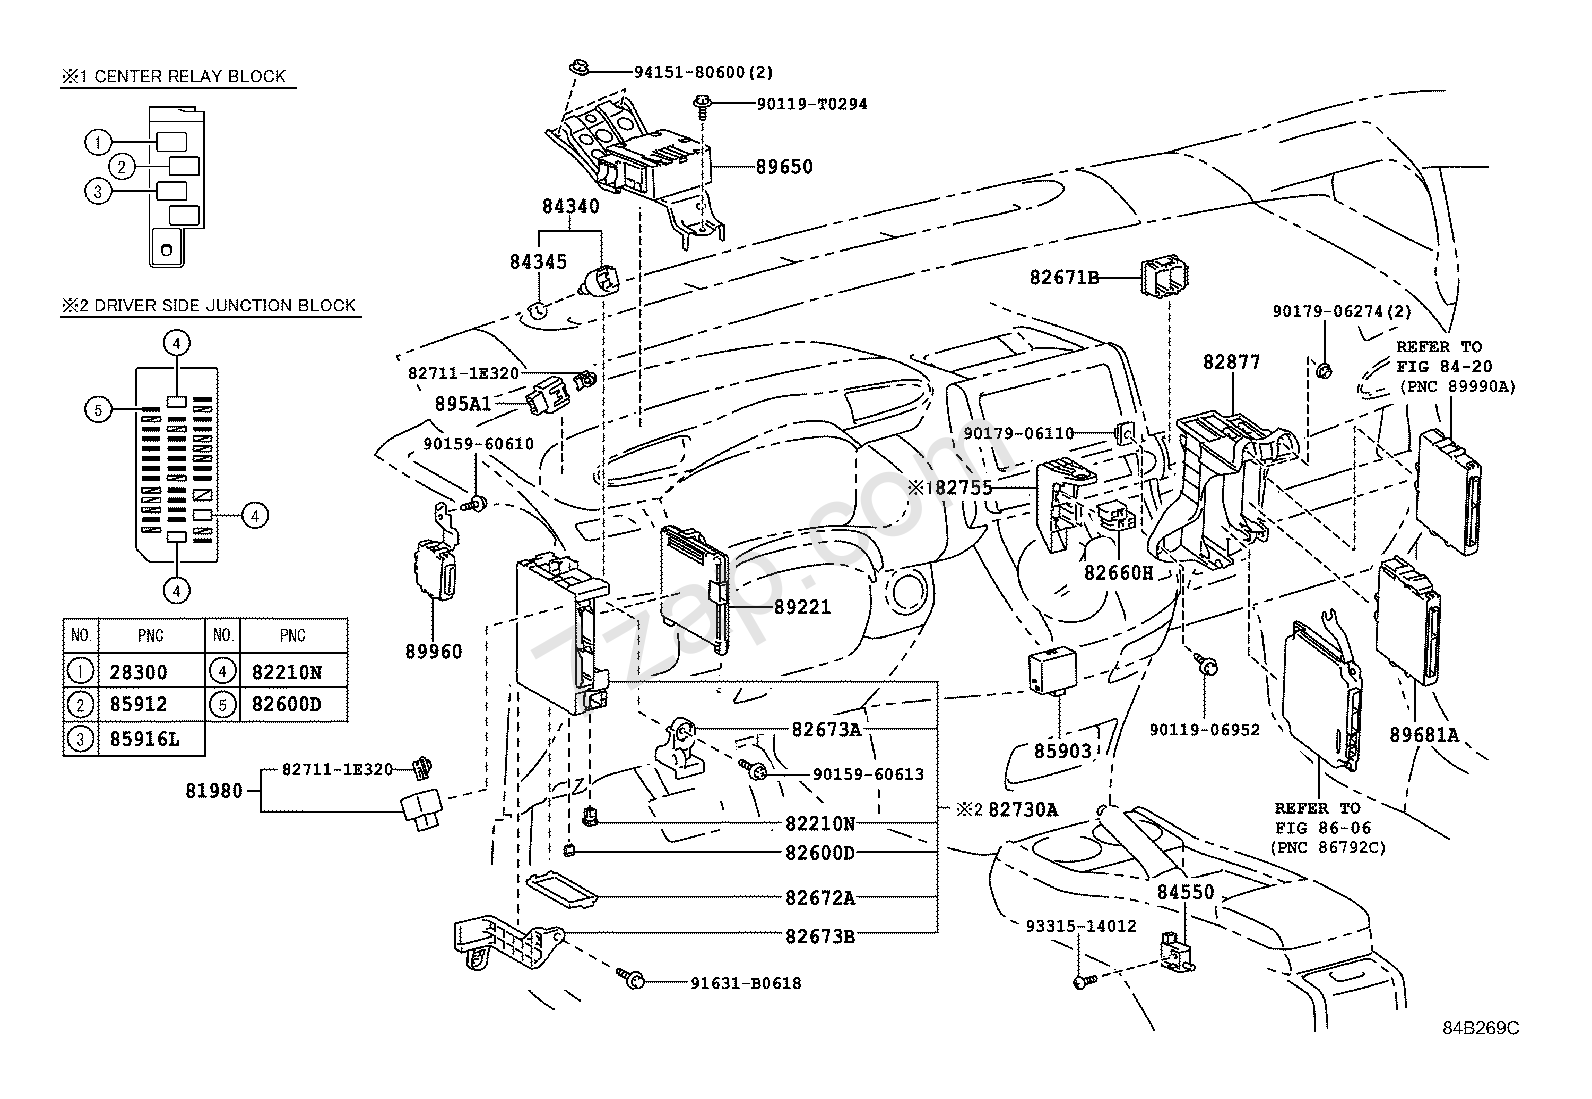 84 Toyota Celica Fuse Box Enthusiast Wiring Diagrams For 91 Imageresizertool Com 1982 70